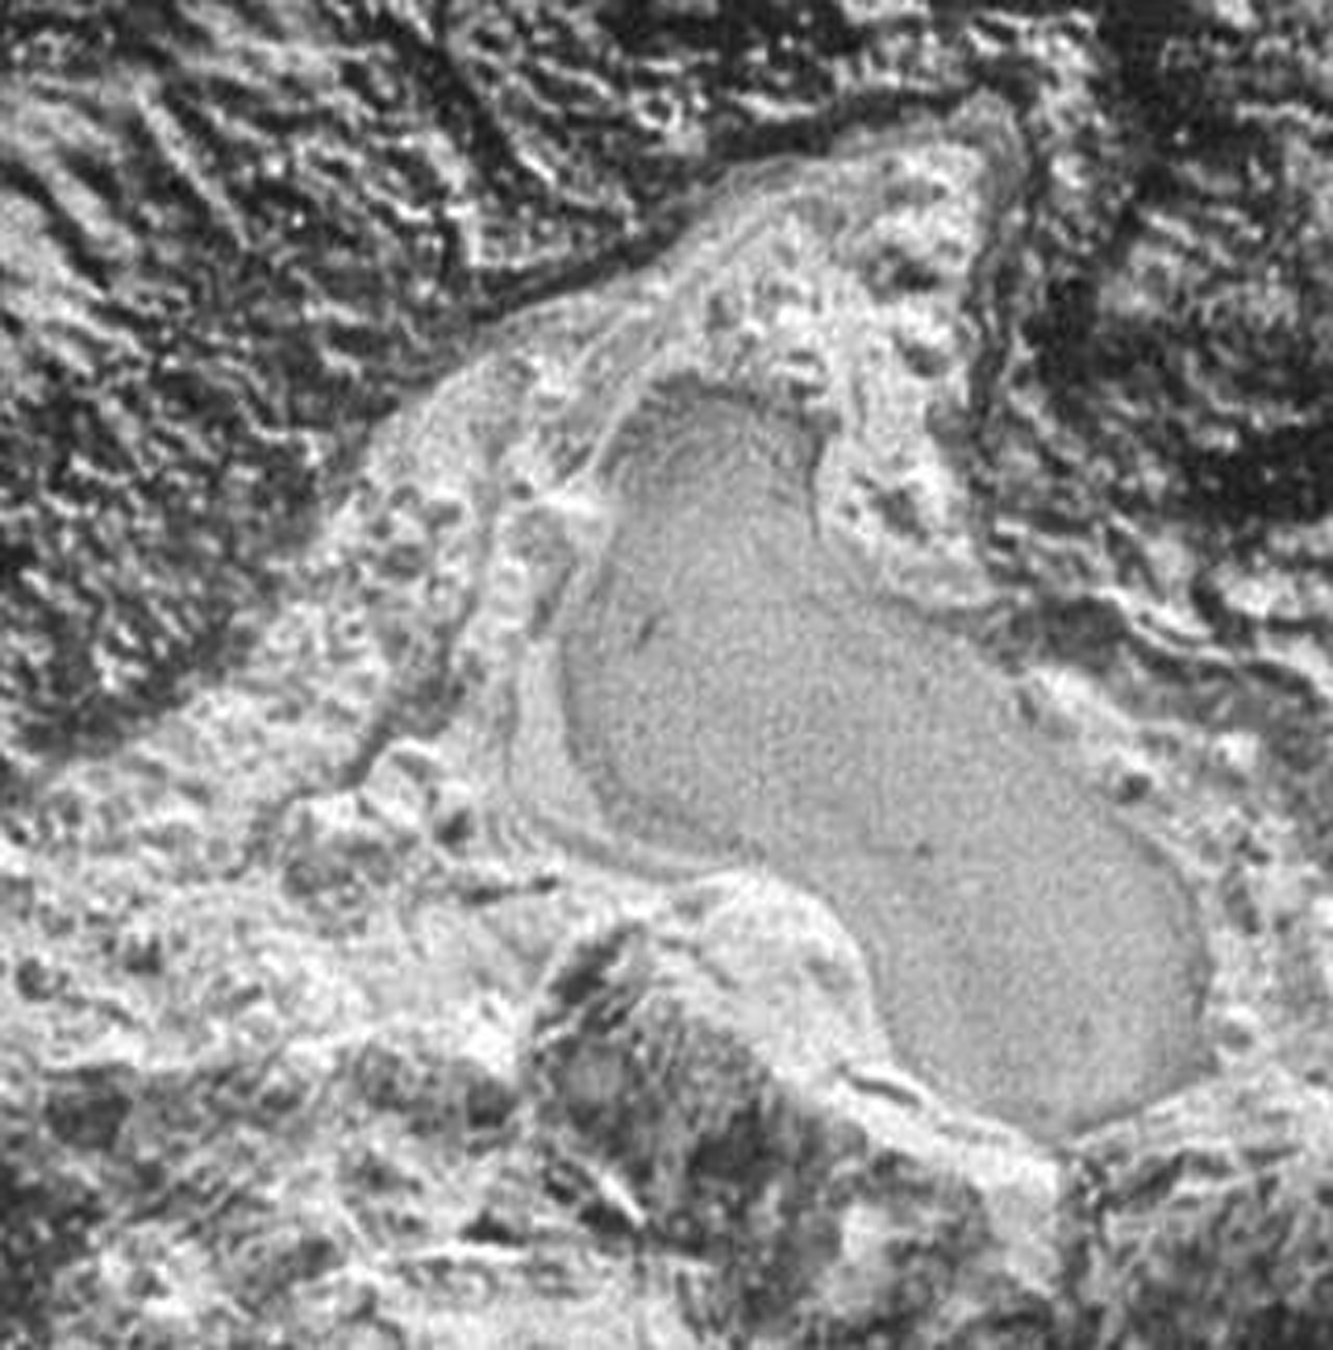 Figure 17: This flat feature in the Al-Idrisi Montes to the west of Sputnik Planum looks very much like a frozen lake surface. Credit: NASA/JHUAPL/SwRI